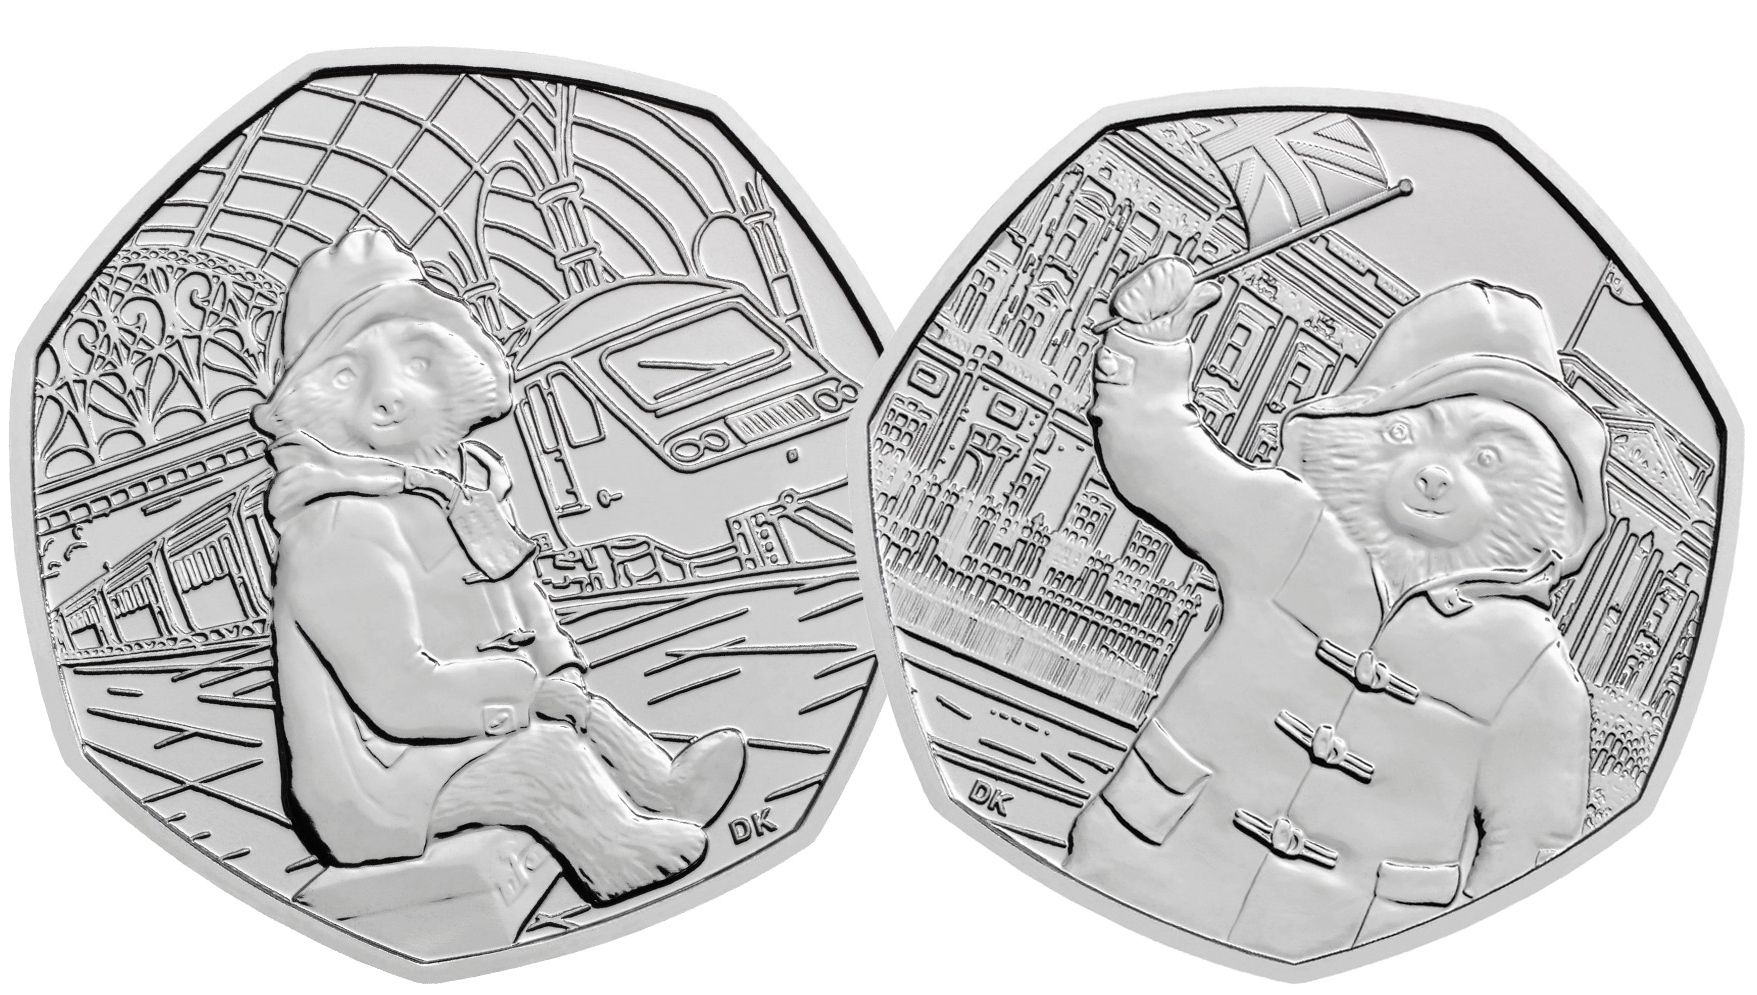 You could soon get your paws on these highly collectible Paddington Bear 50p coins